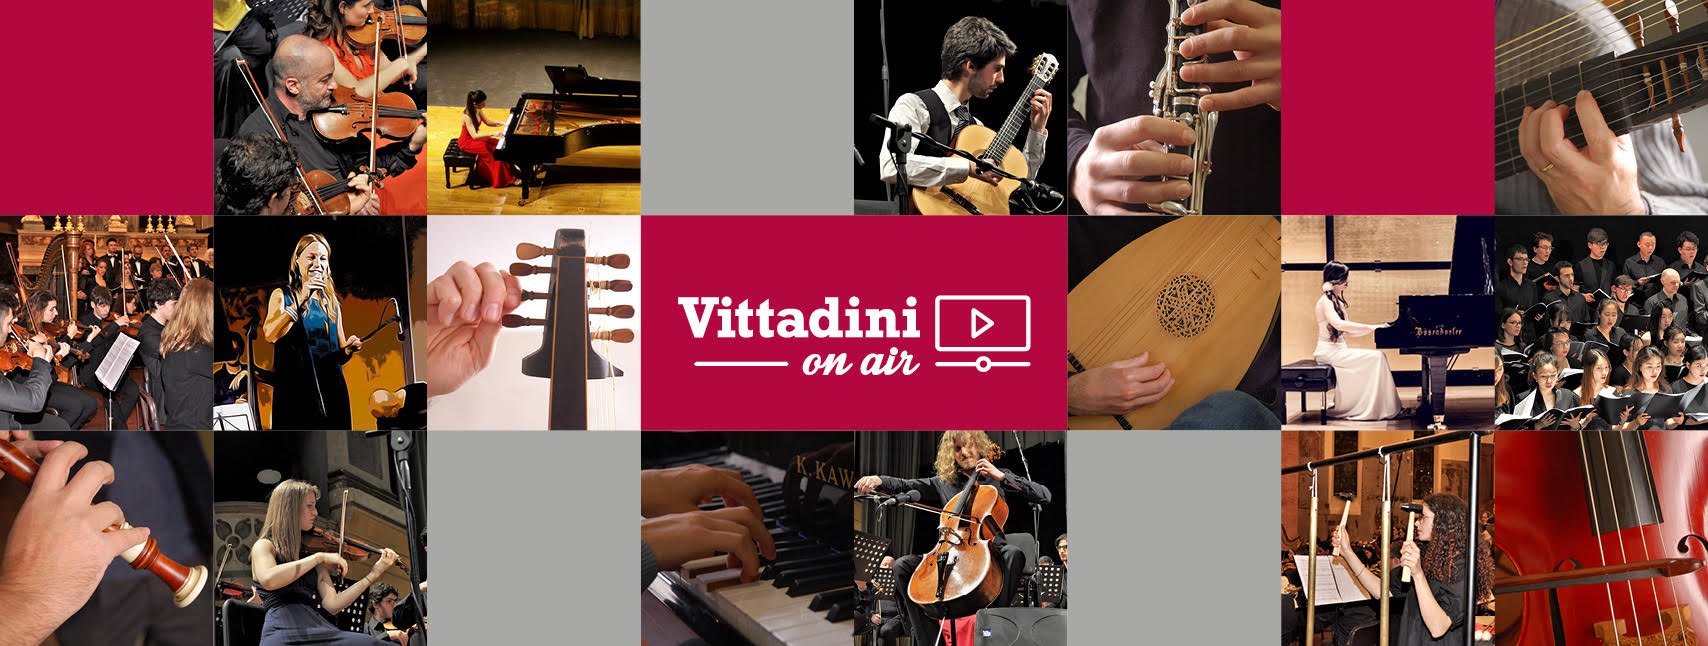 Vittadini on air